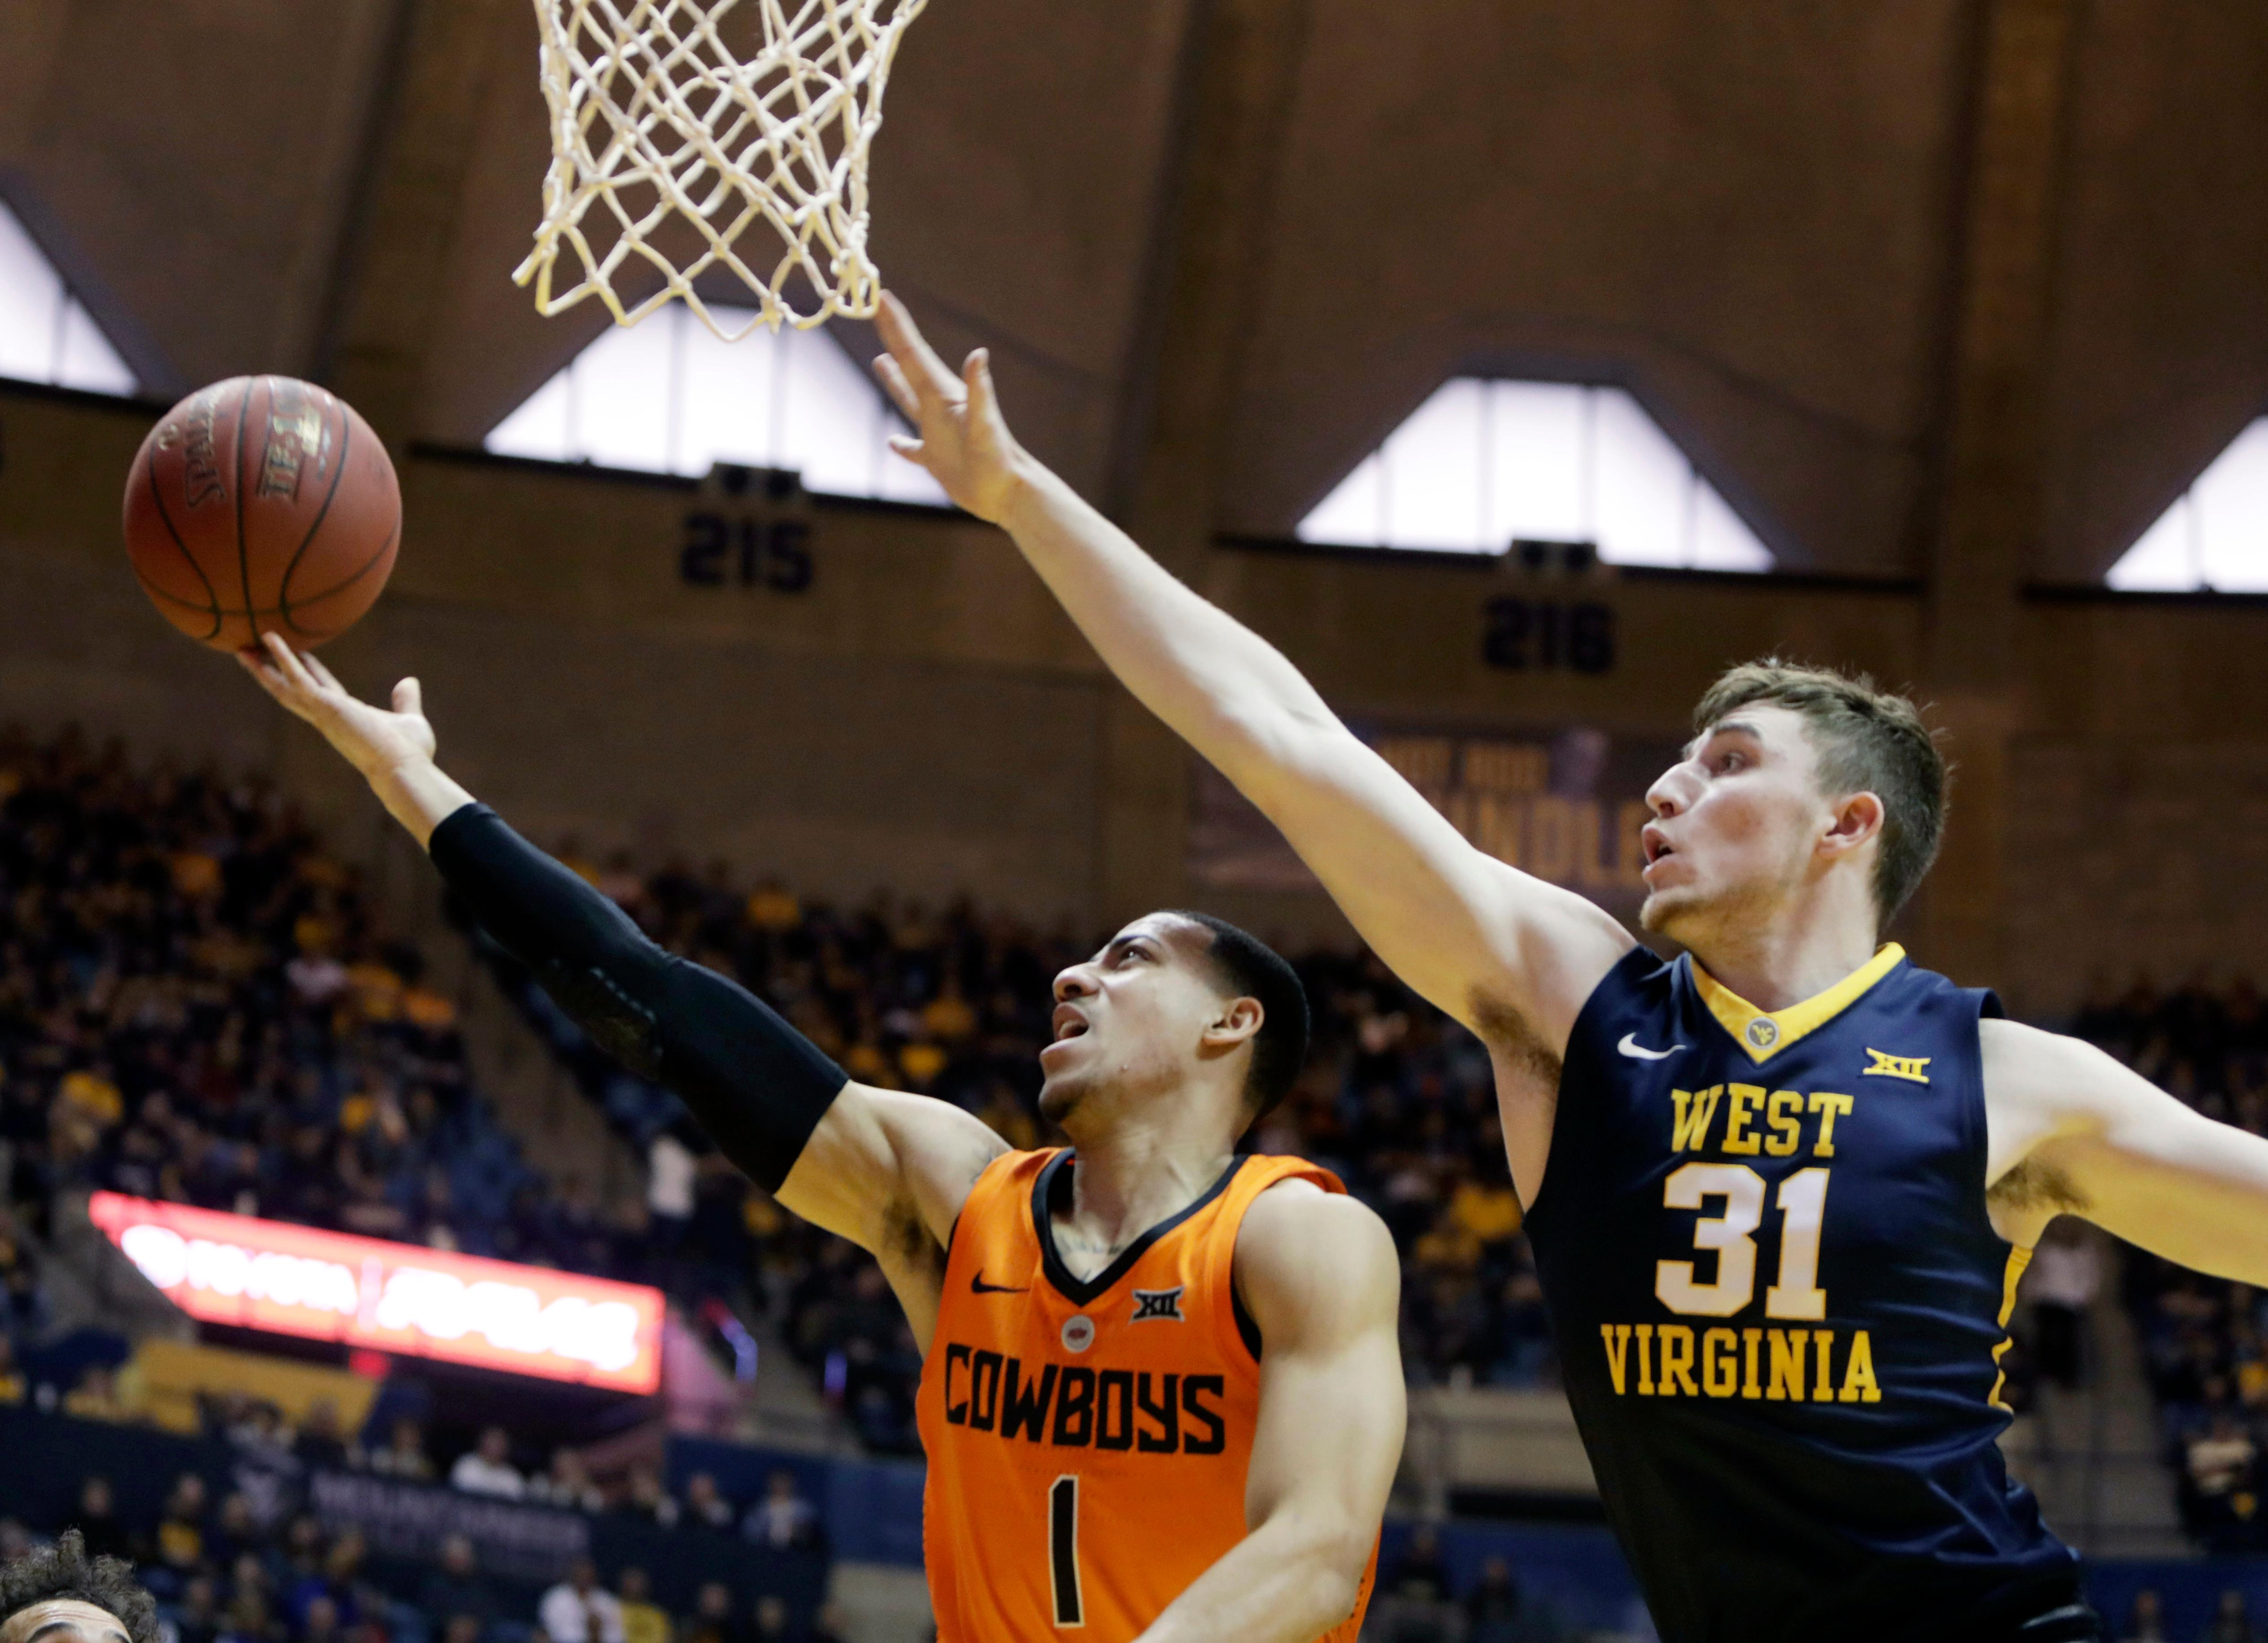 Oklahoma State guard Kendall Smith (1) drives as West Virginia forward Logan Routt (31) attempts to block his shot during the first half of an NCAA college basketball game Saturday, Feb. 10, 2018, in Morgantown, W.Va. (AP Photo/Raymond Thompson)